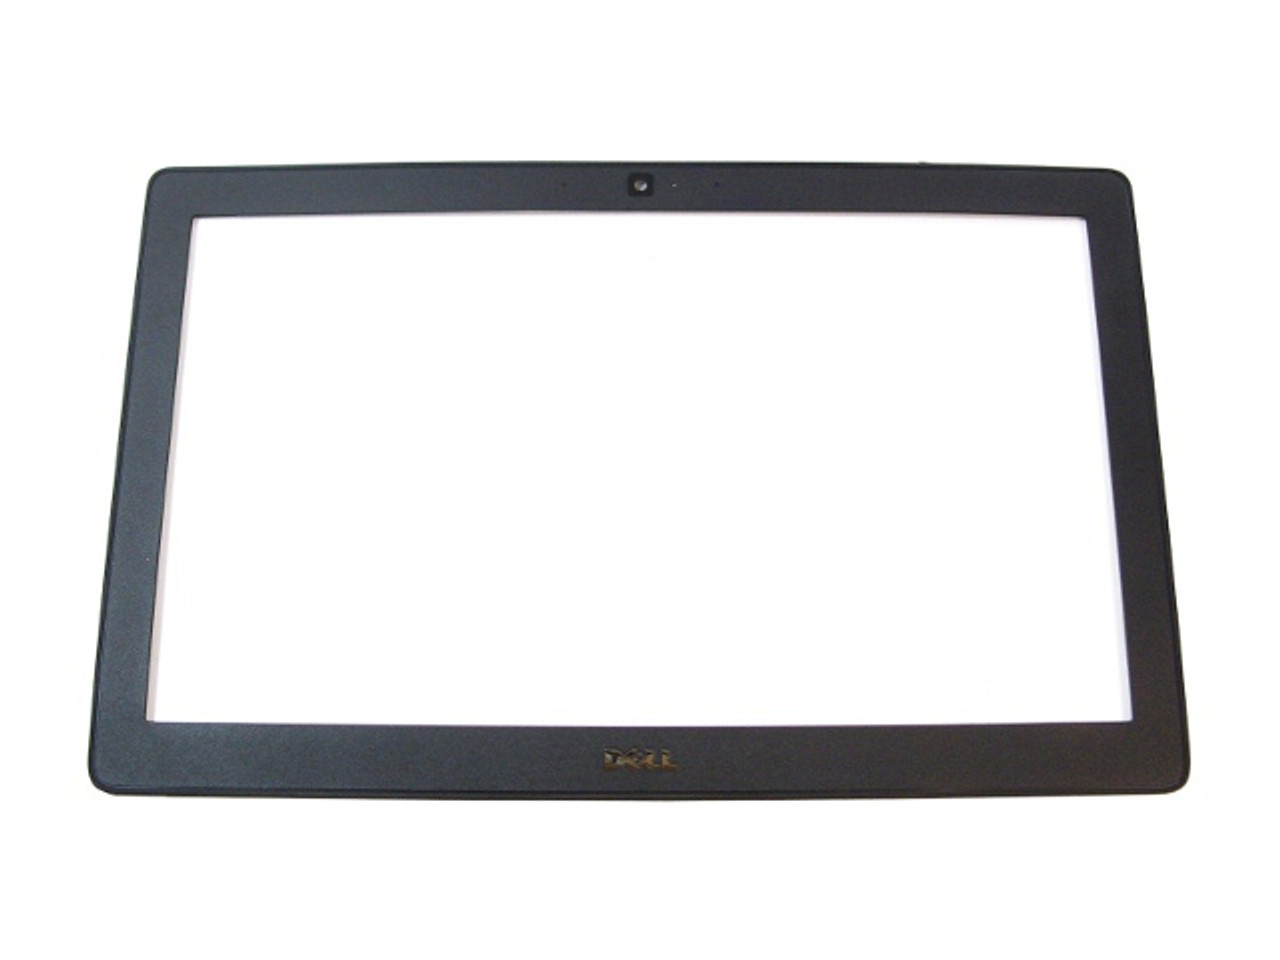 Dell Latitude E6320 LCD Front Trim Bezel With Camera Window - 266RH